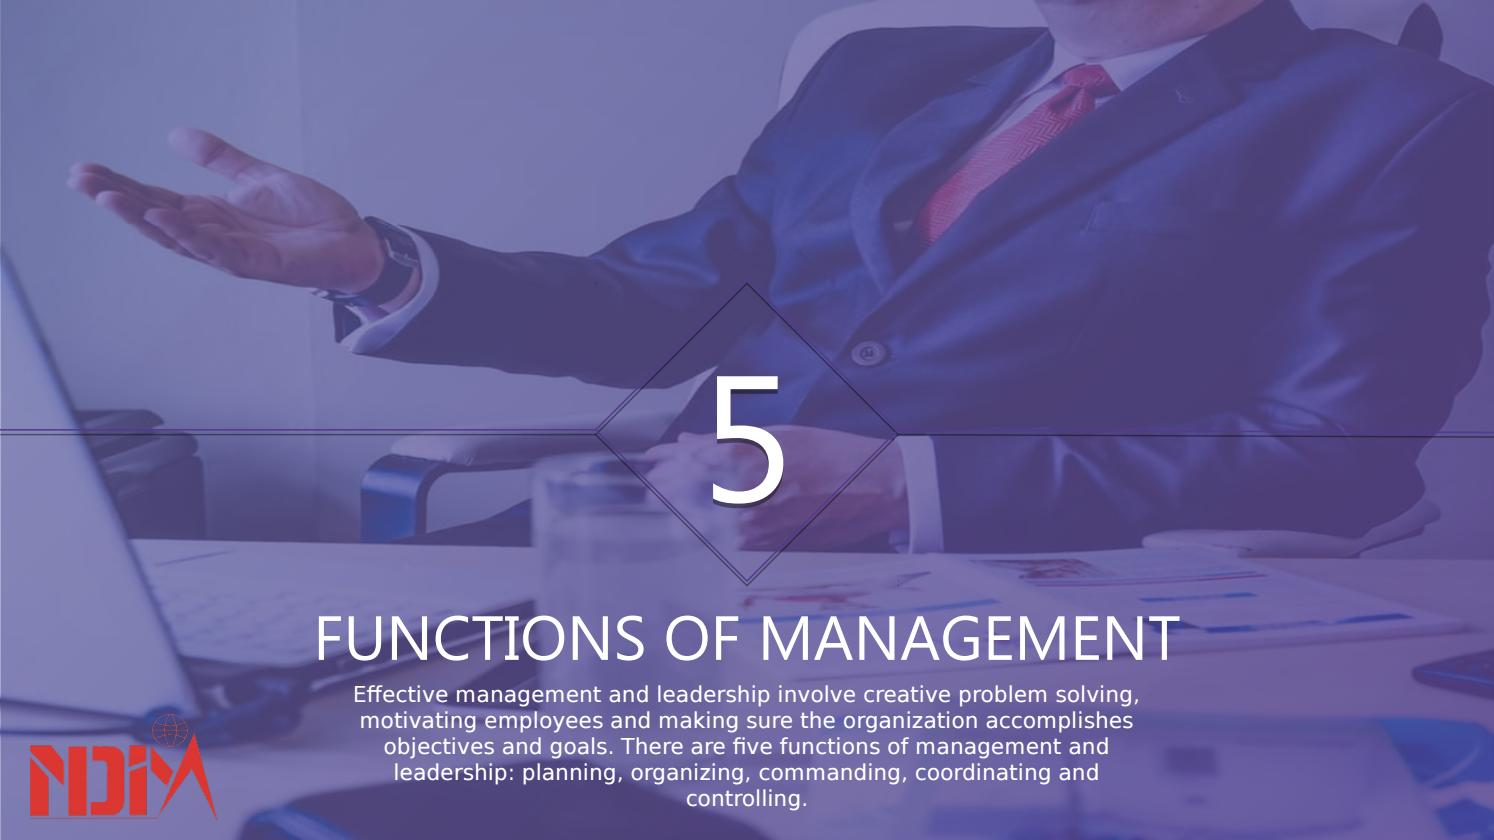 Function of management by New Delhi Institute of Management